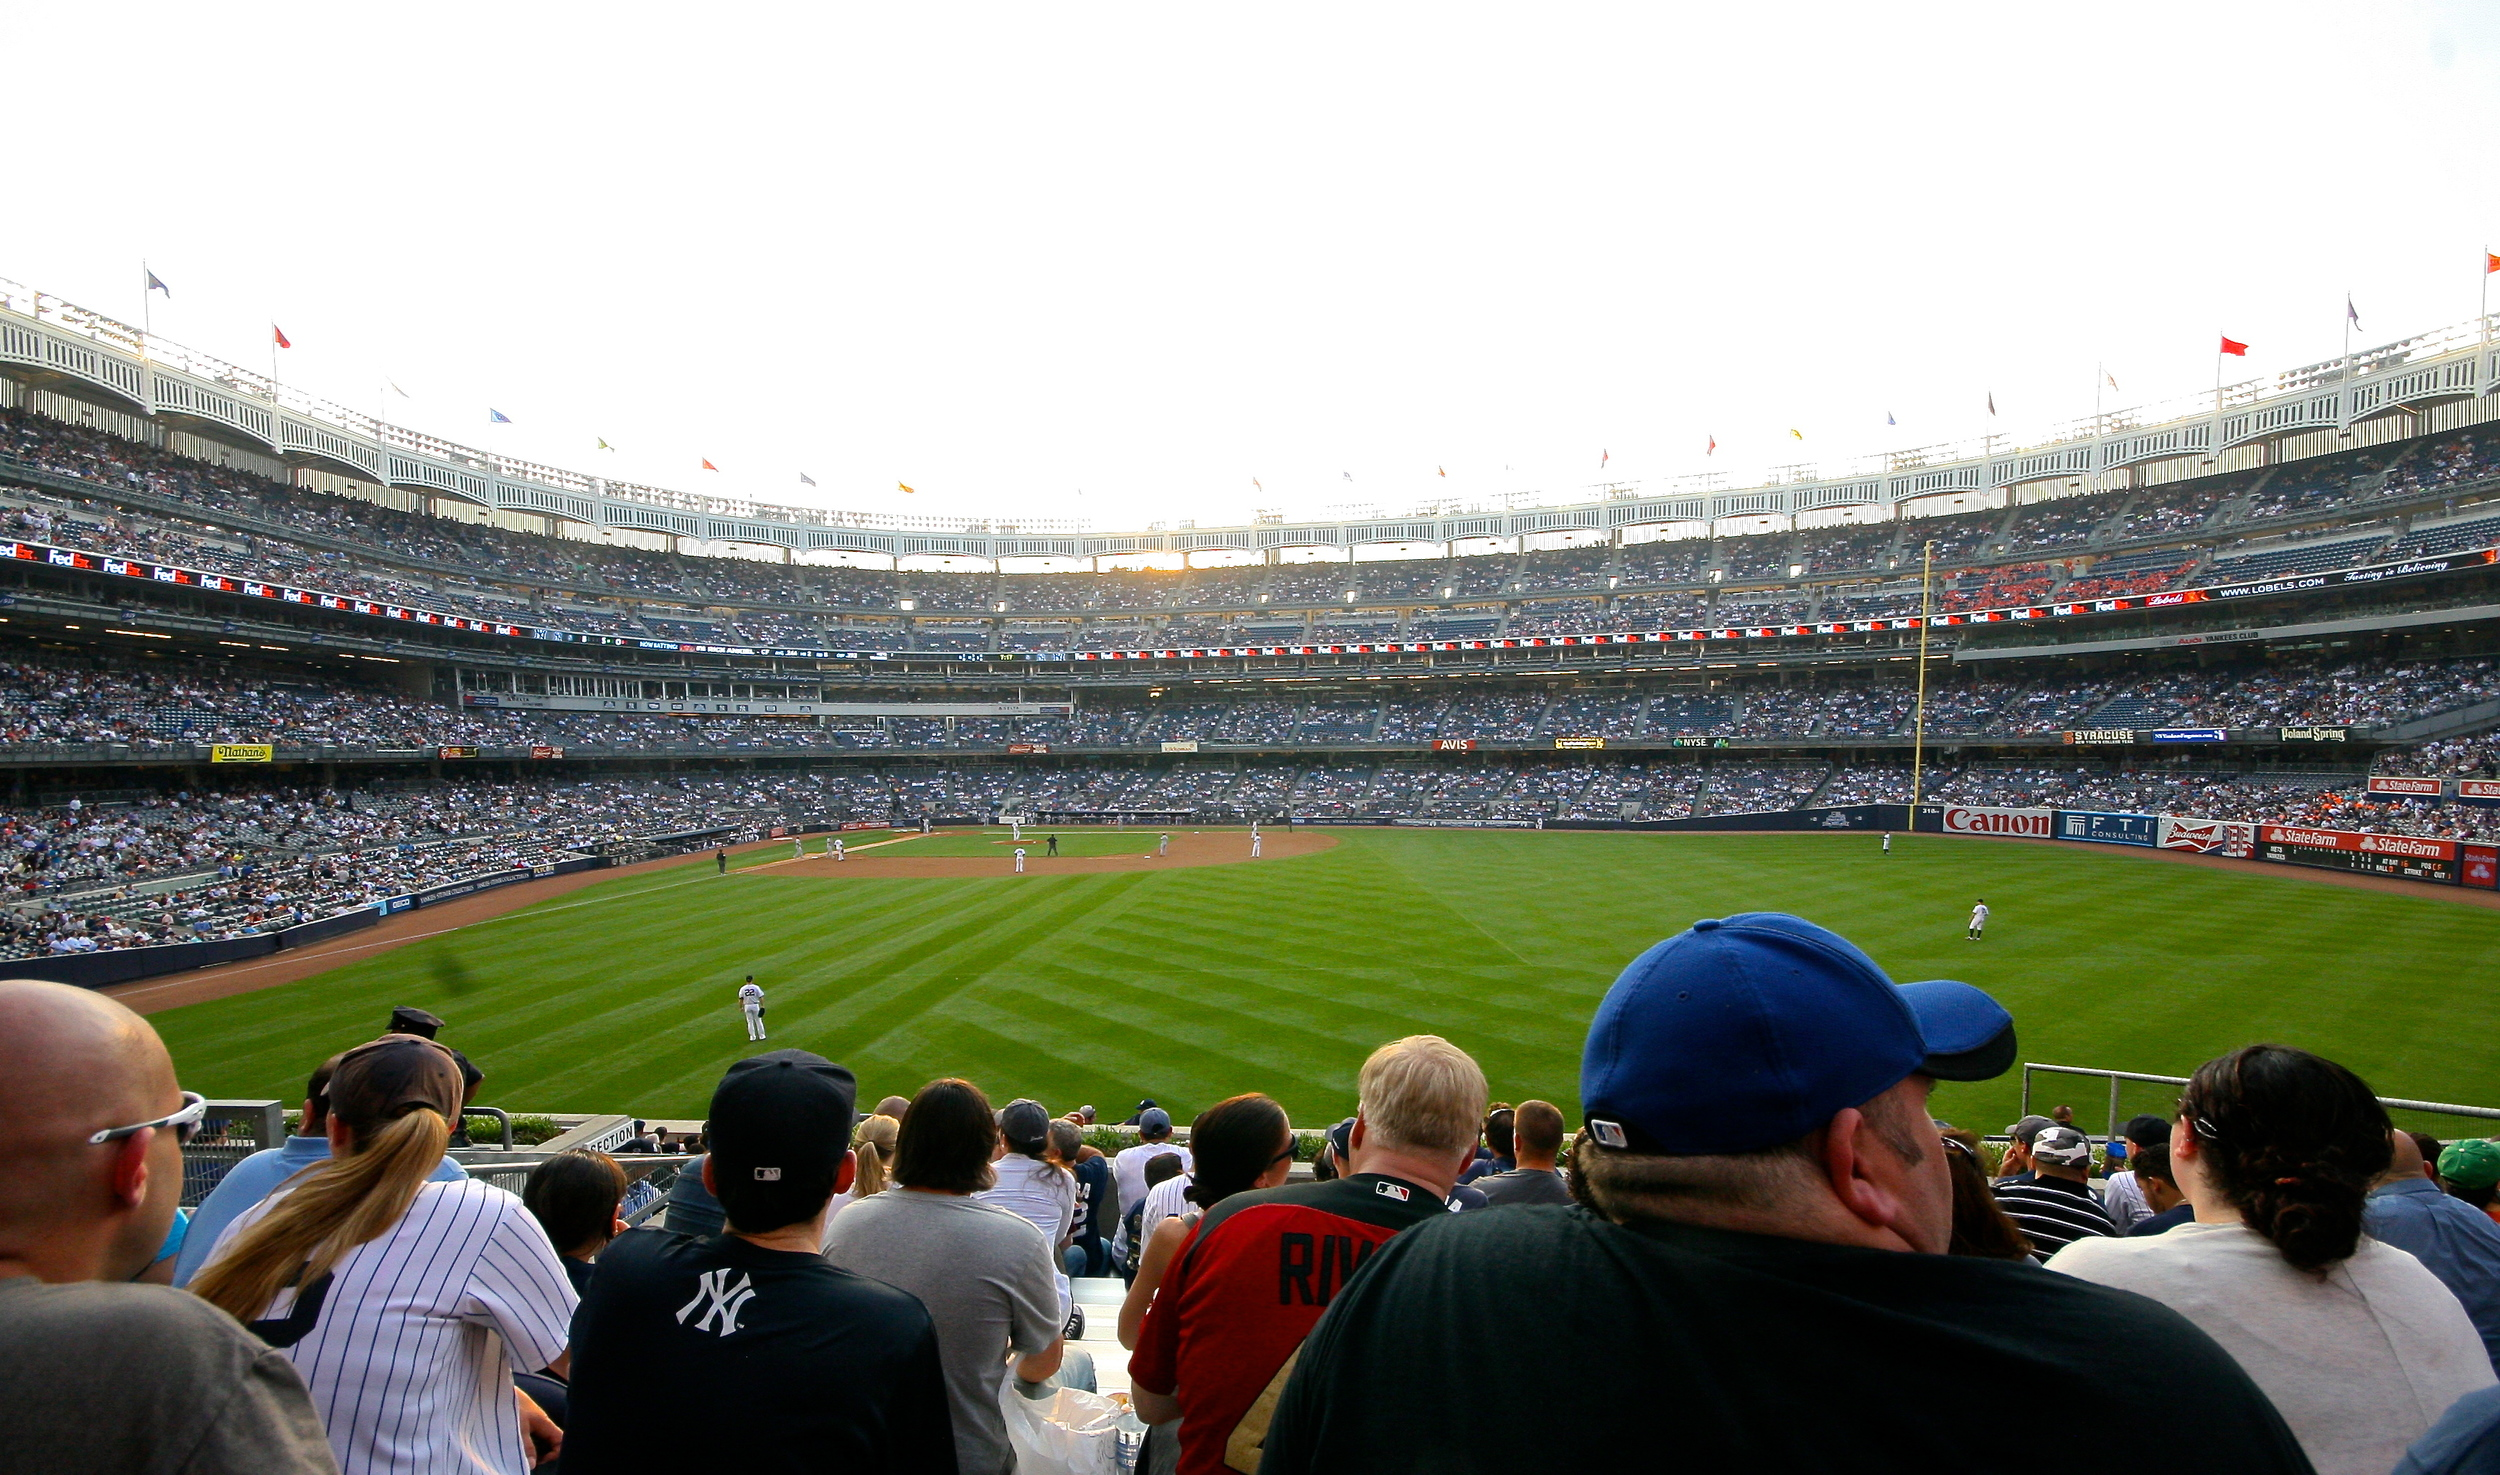 View from the bleacher creatures